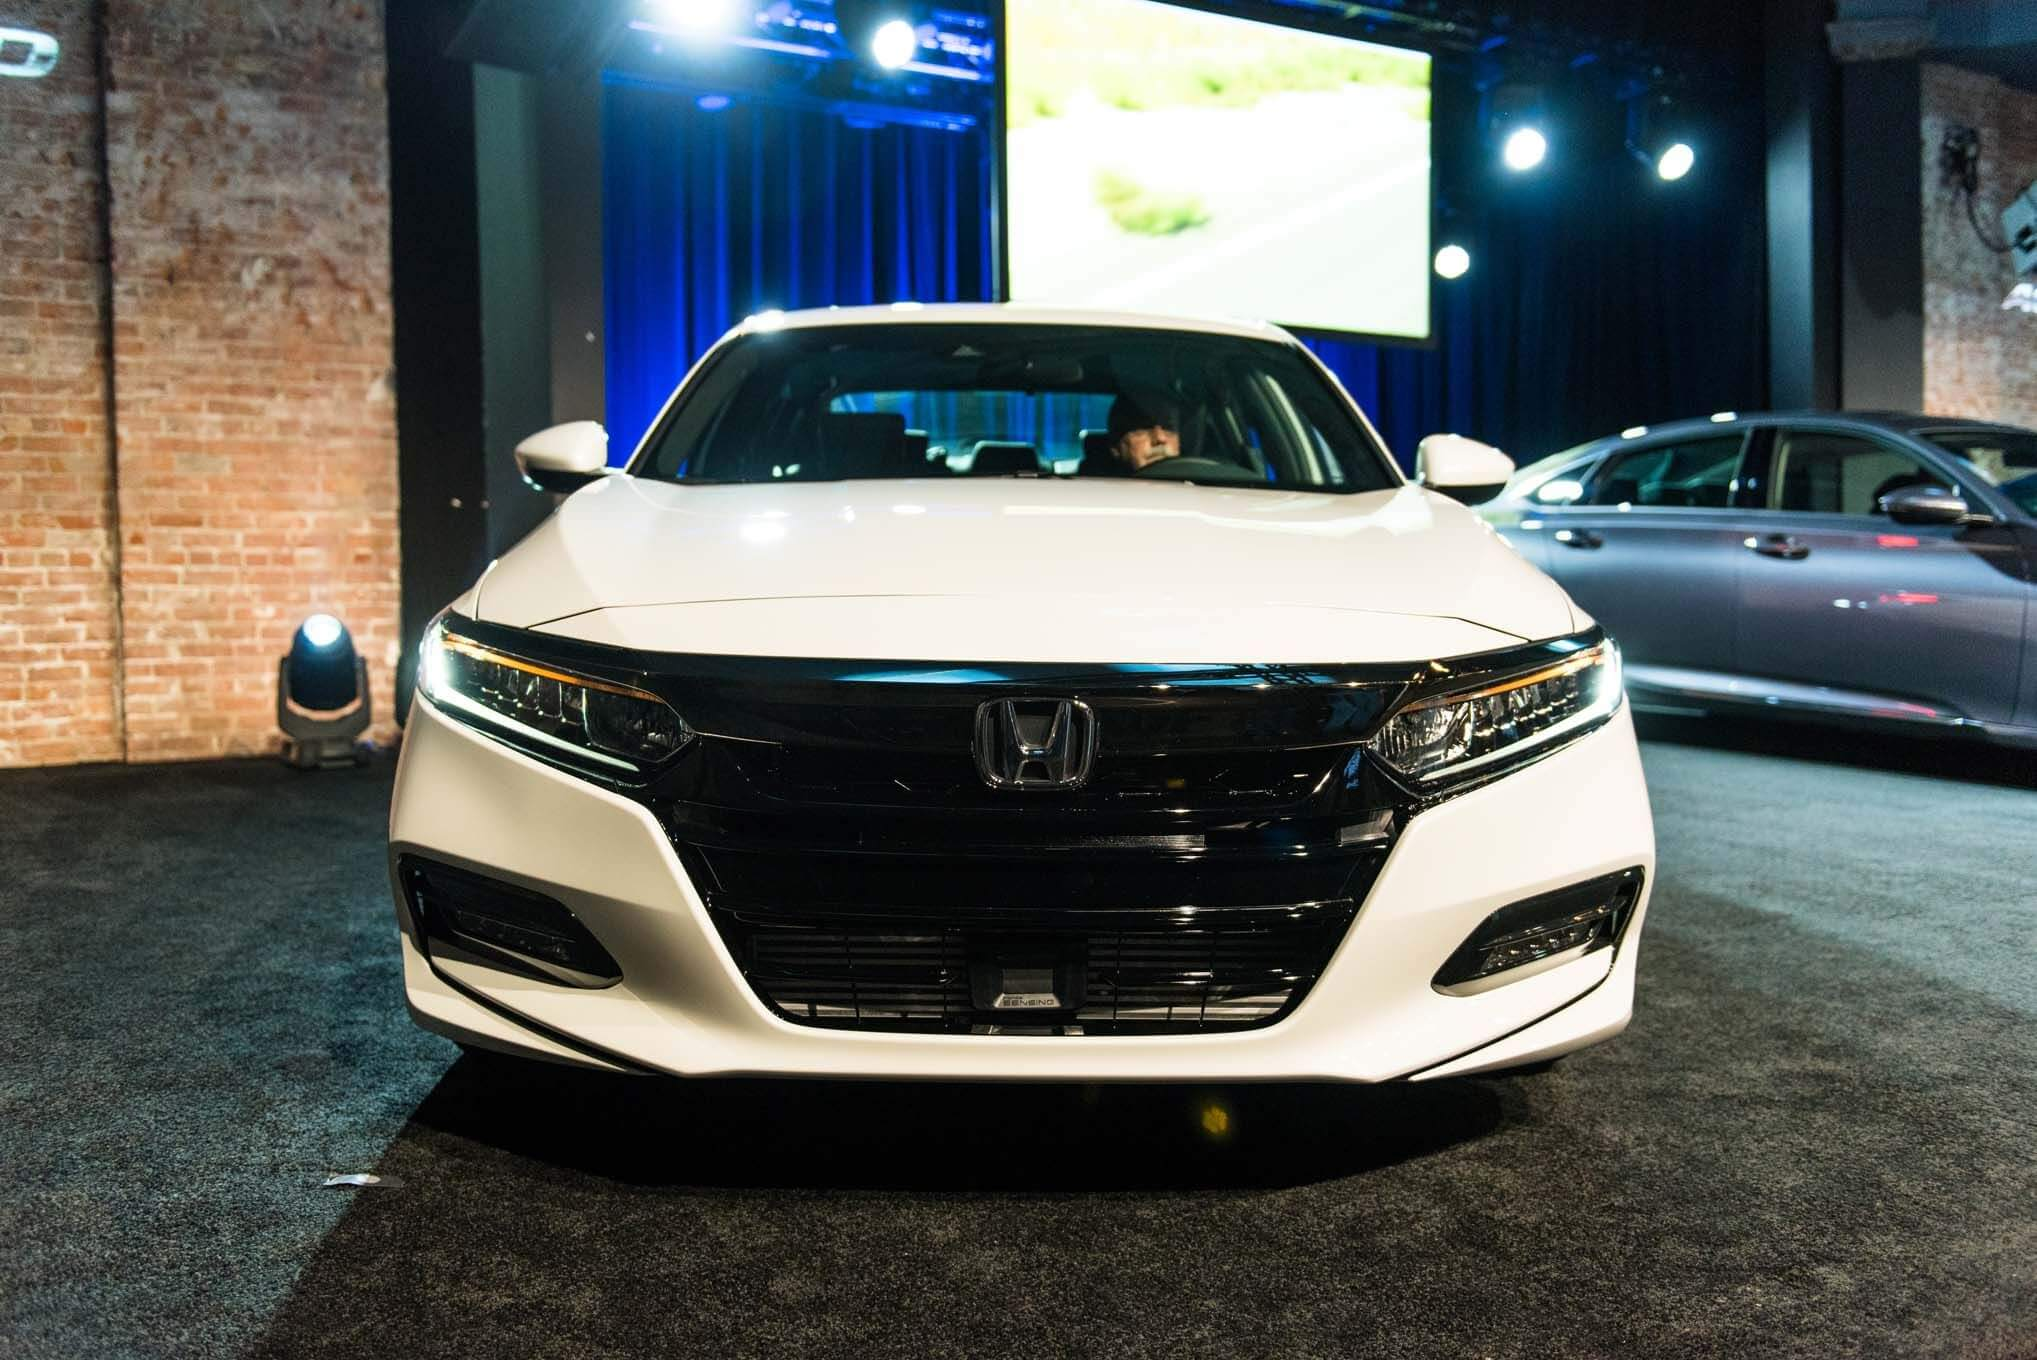 2020 Honda Accord Concept Redesign Changes 2020 Honda Accord Redesign, Release Date, Changes, Concept